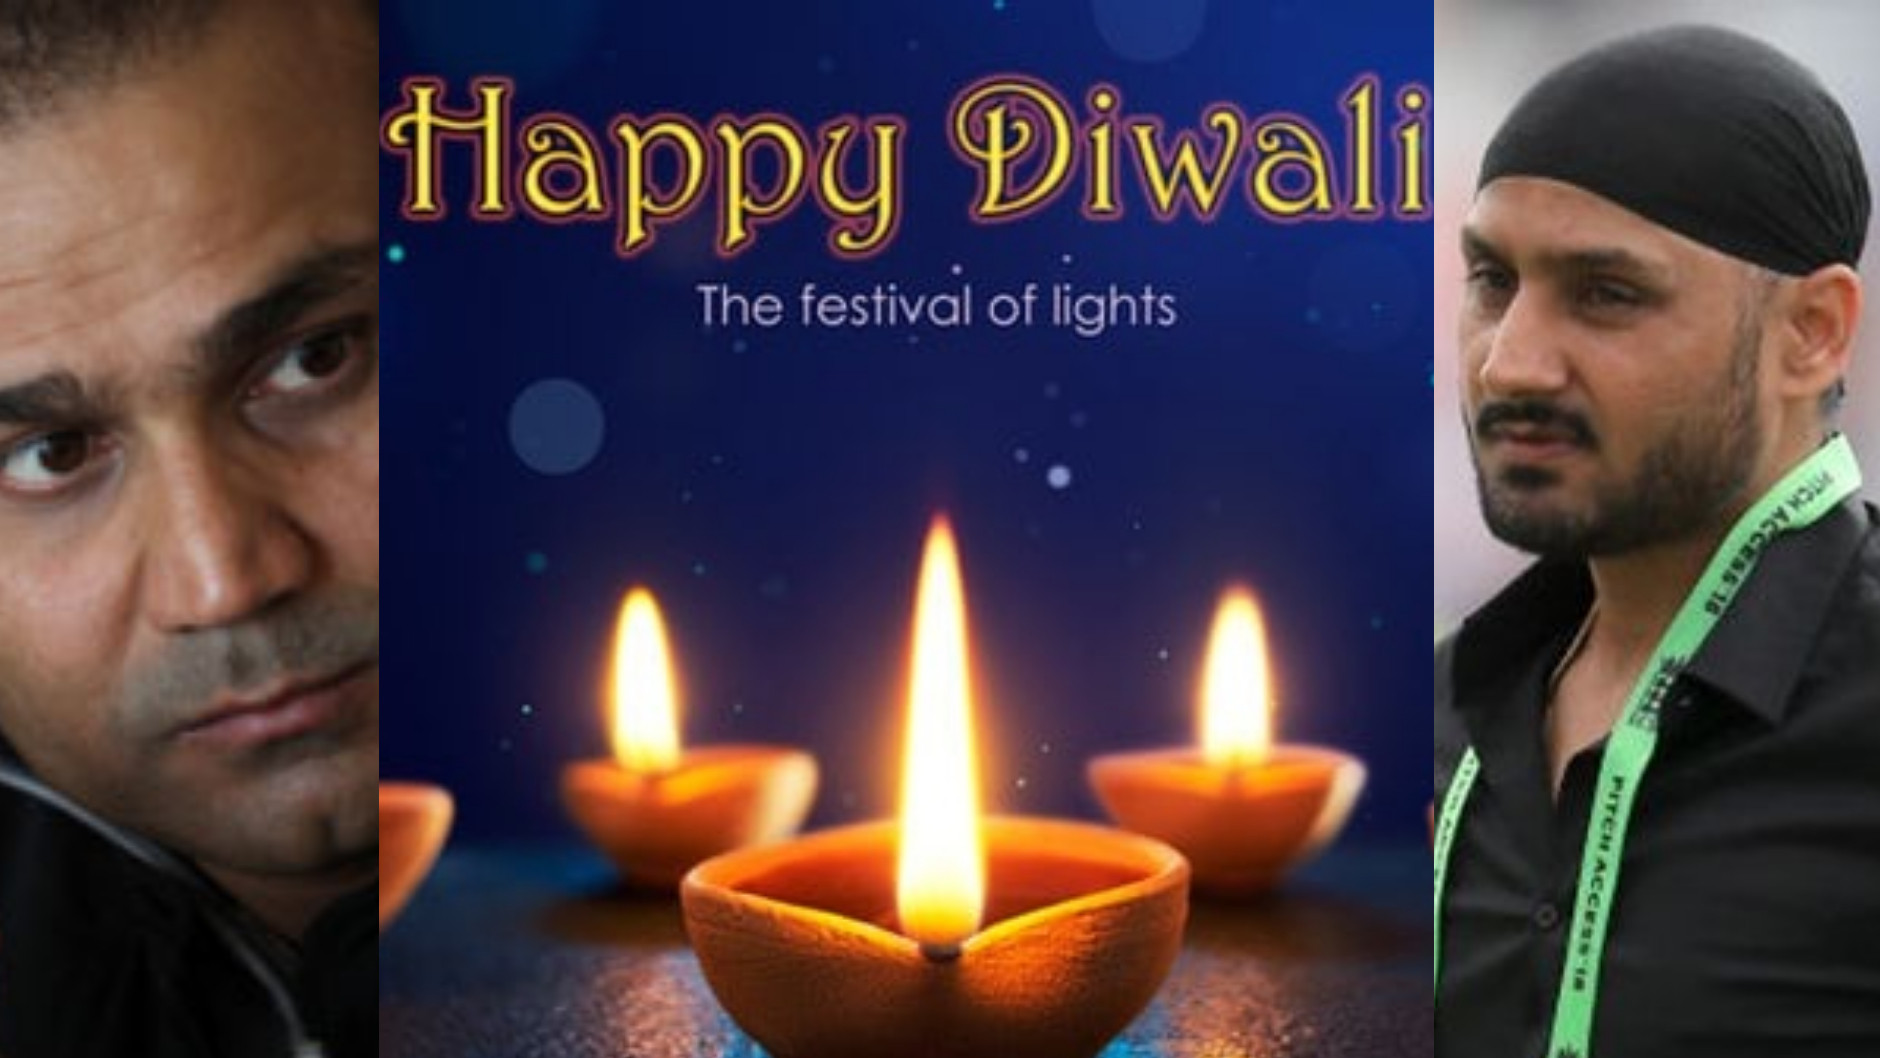 Cricket fraternity wishes everyone on the auspicious occasion of Diwali festival